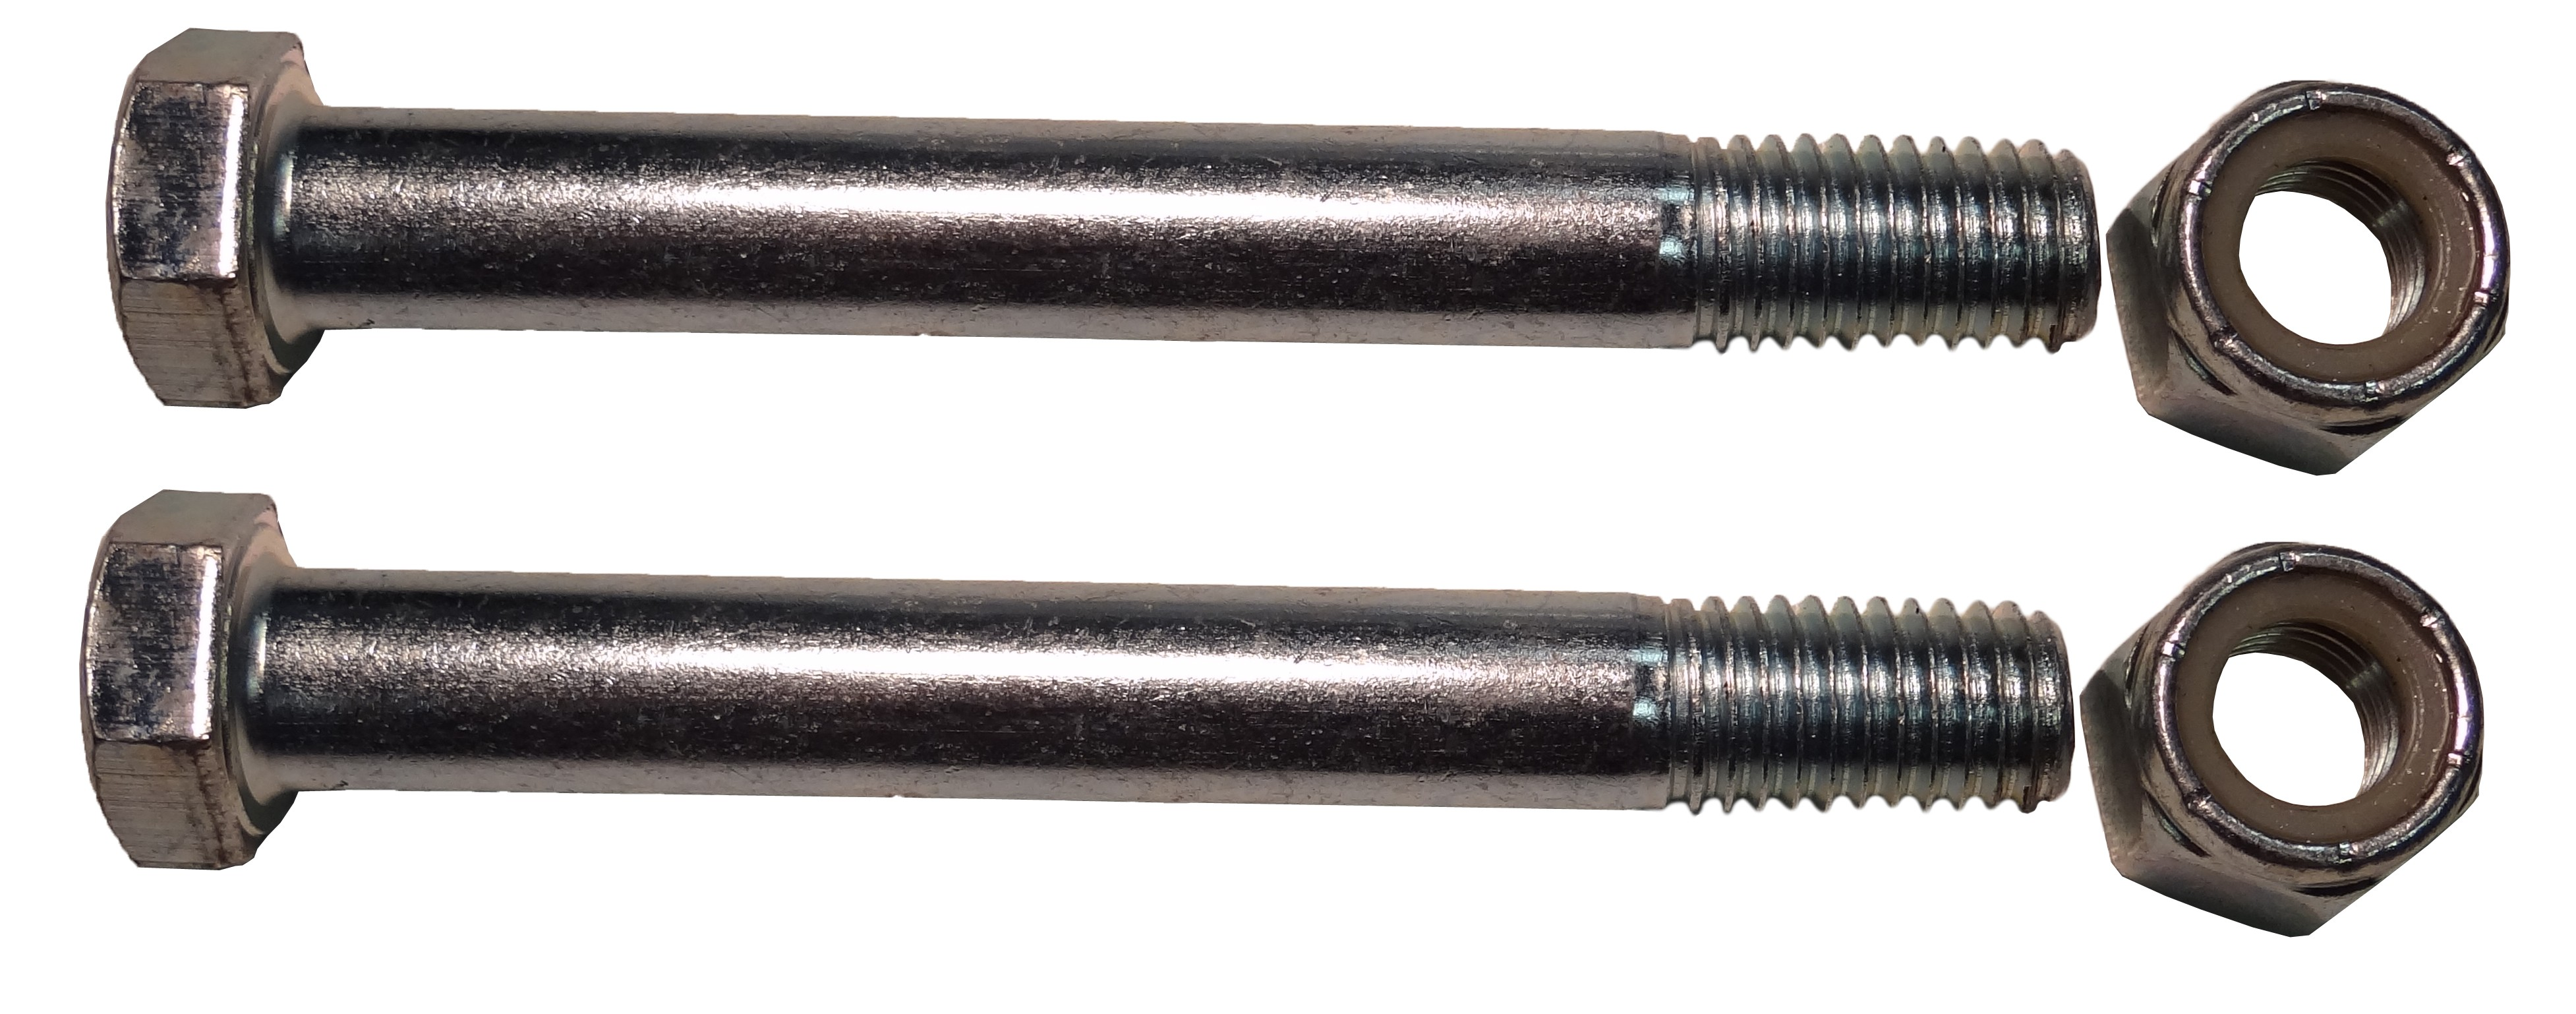 """Bolt Kit - (2) 5/8"""" x 5"""" Bolts (Grade 8) with Nuts"""